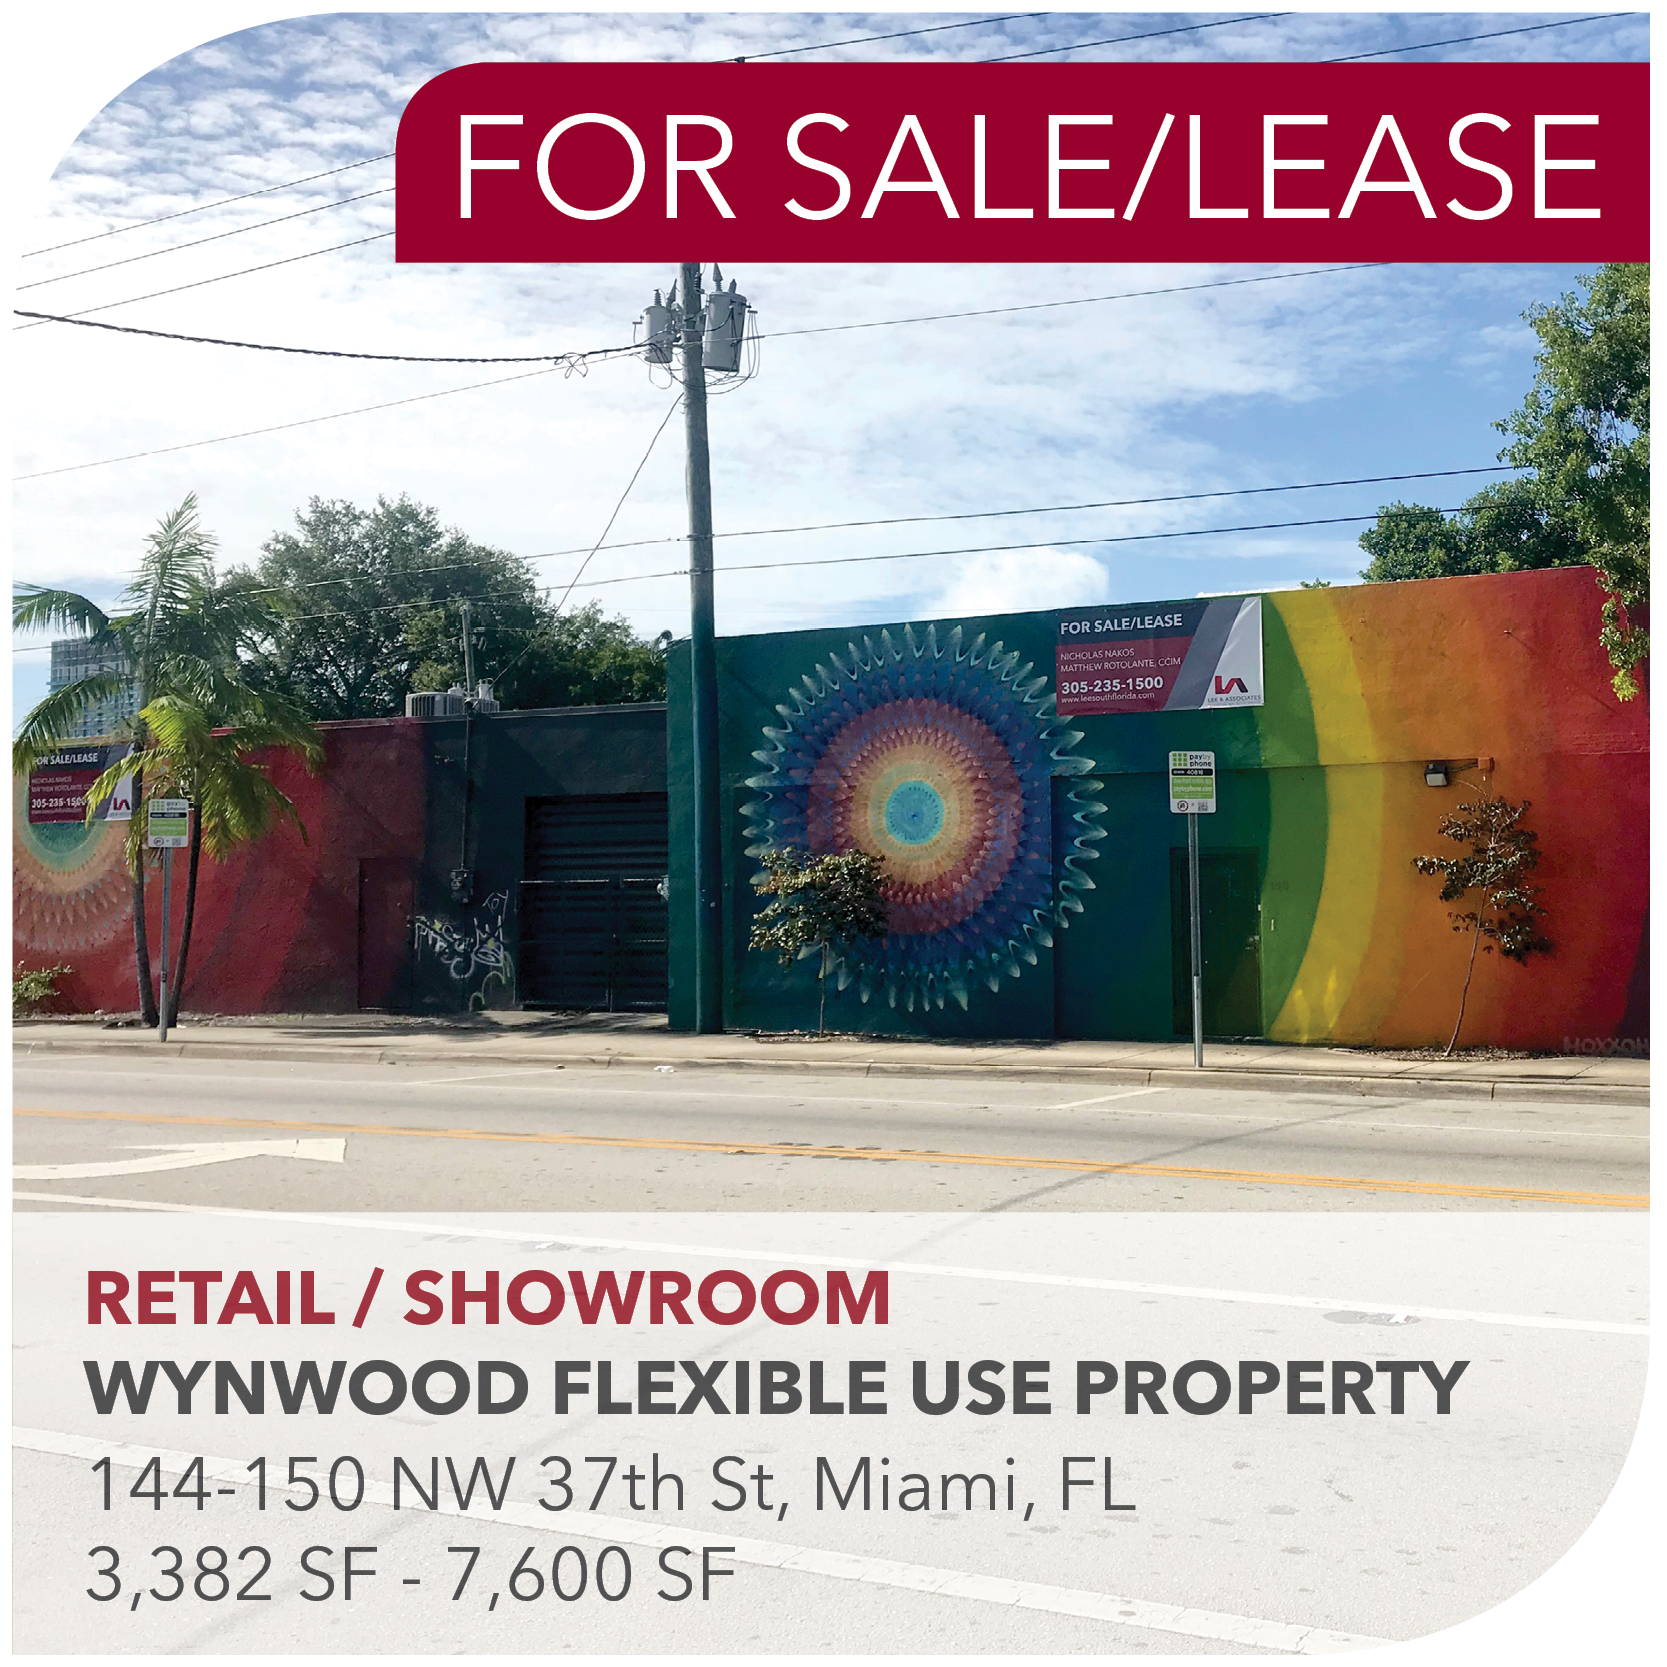 Wynwood Property For Sale and Lease